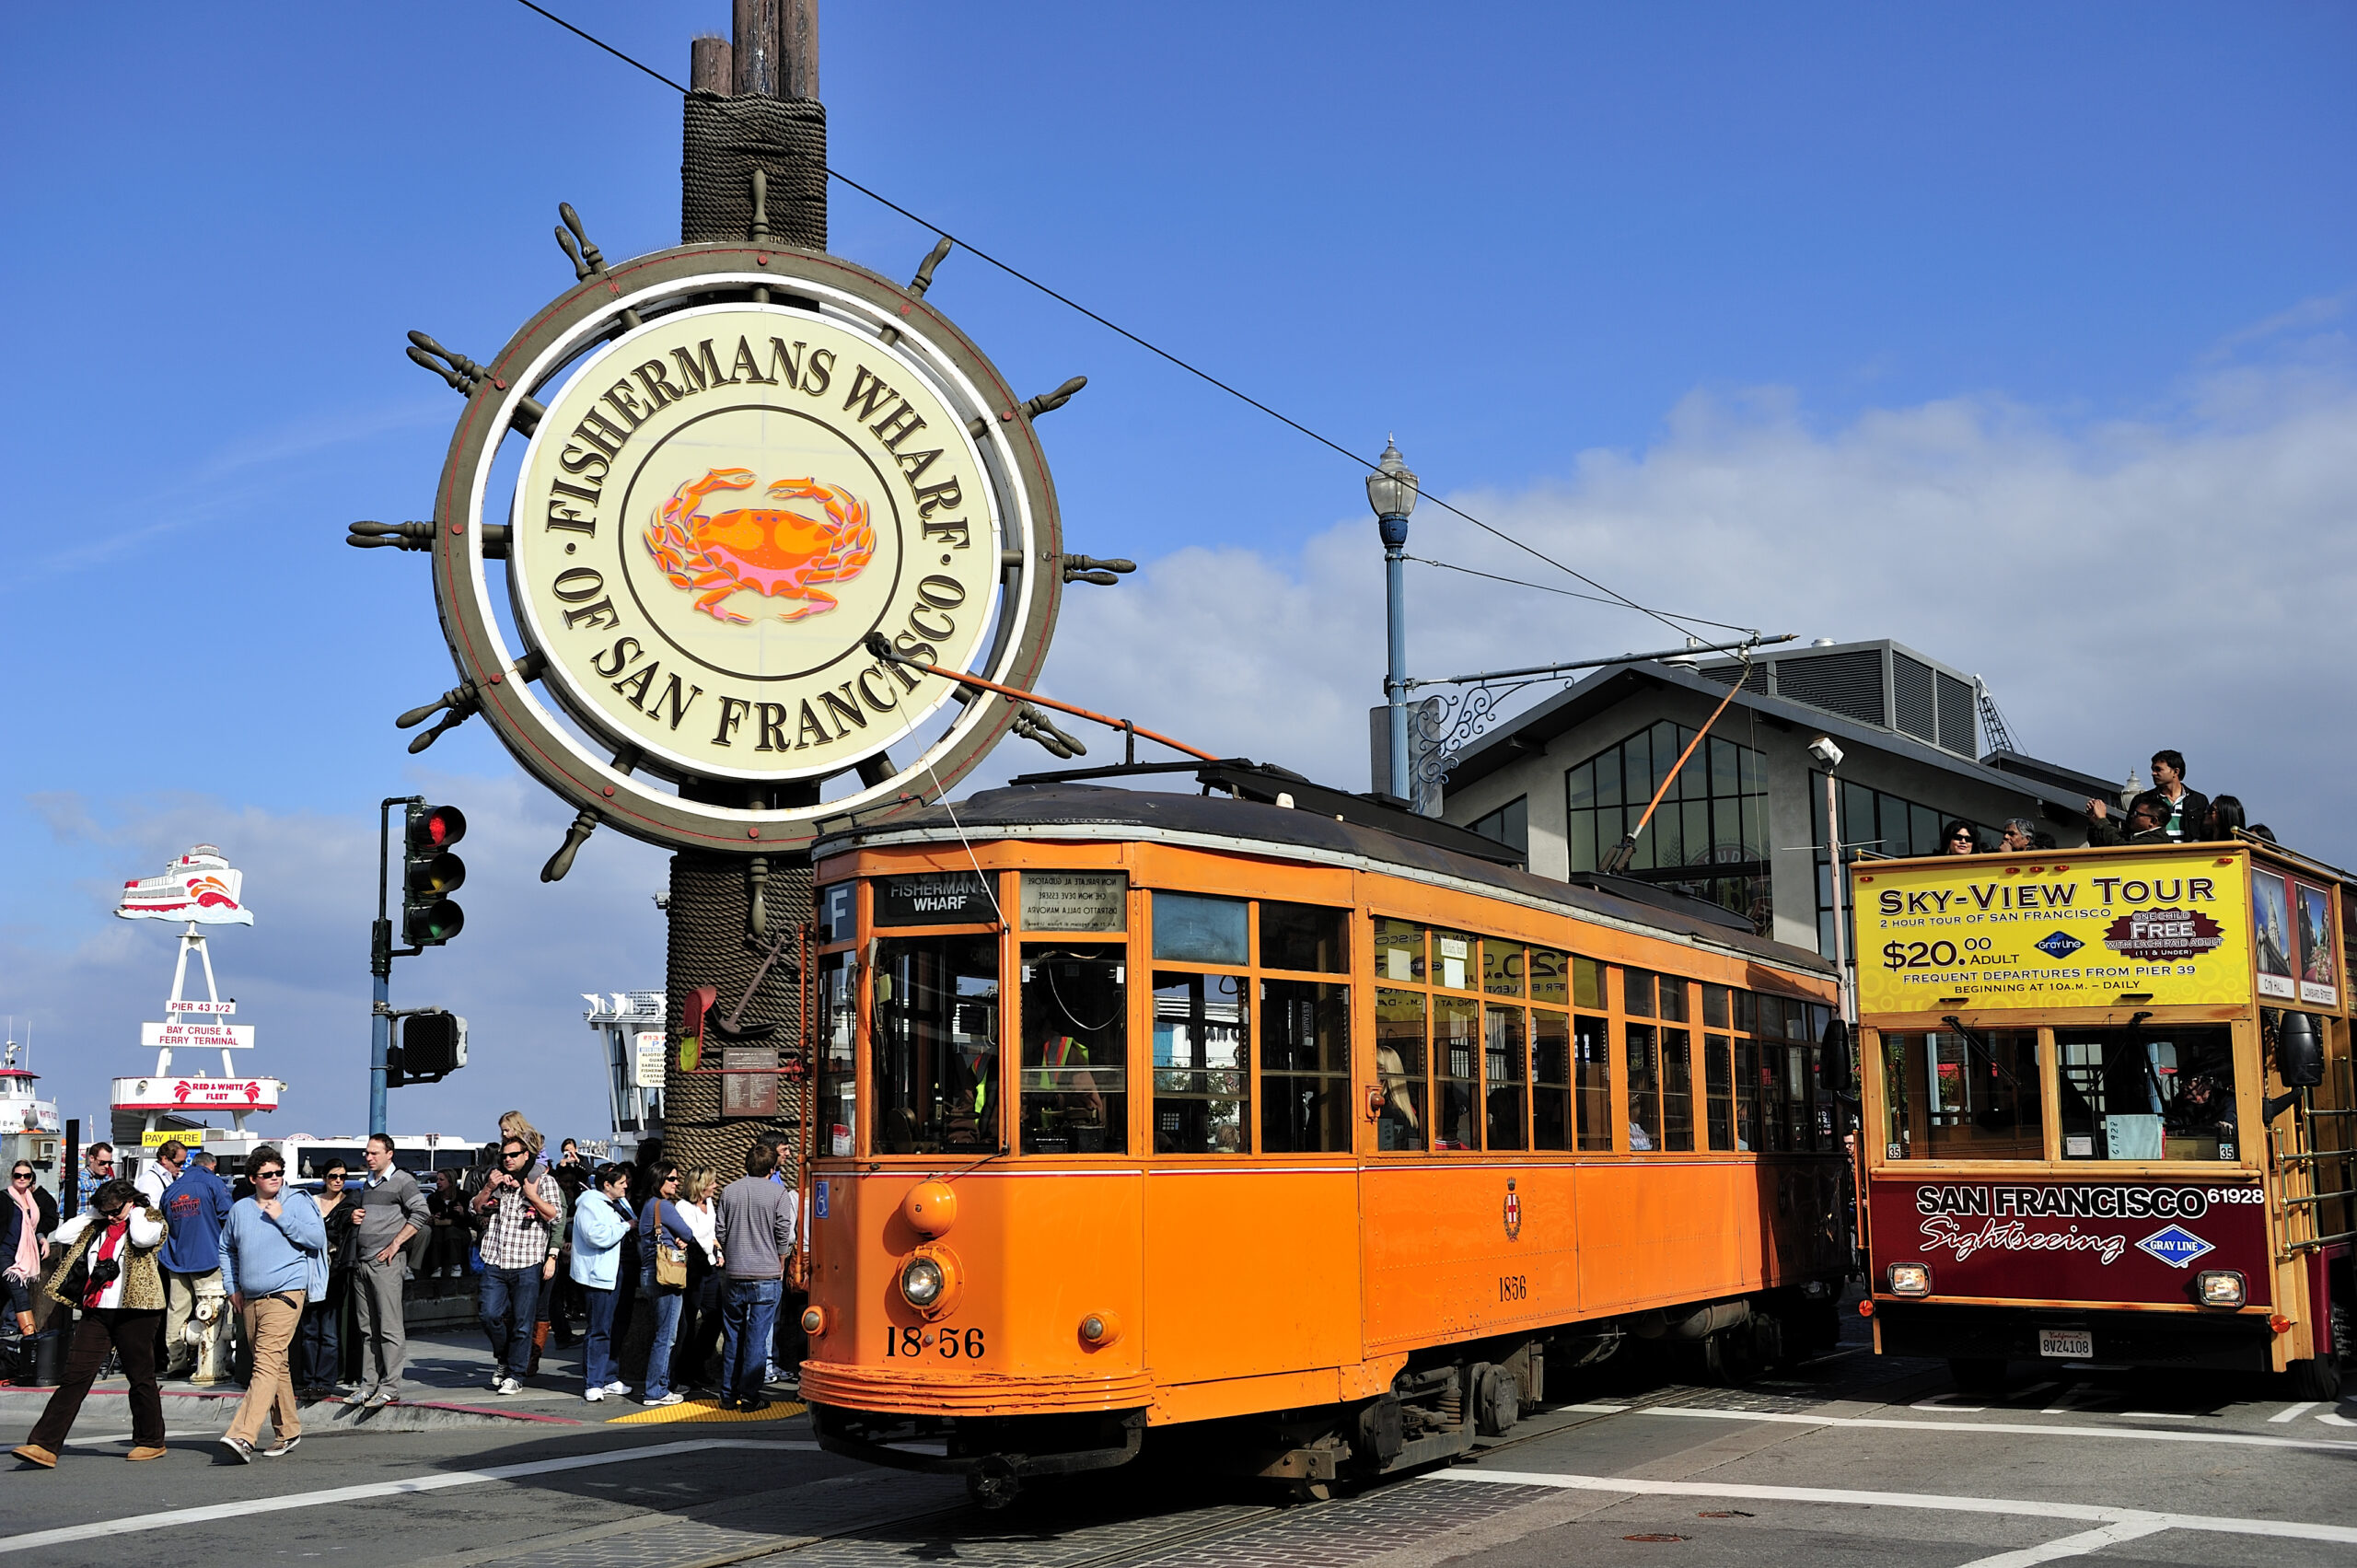 Photo of Fisherman's Wharf, one of the best places to stay in San Francisco. Photos features iconic Fisherman's Wharf sign with two cable car along the sidewalk.